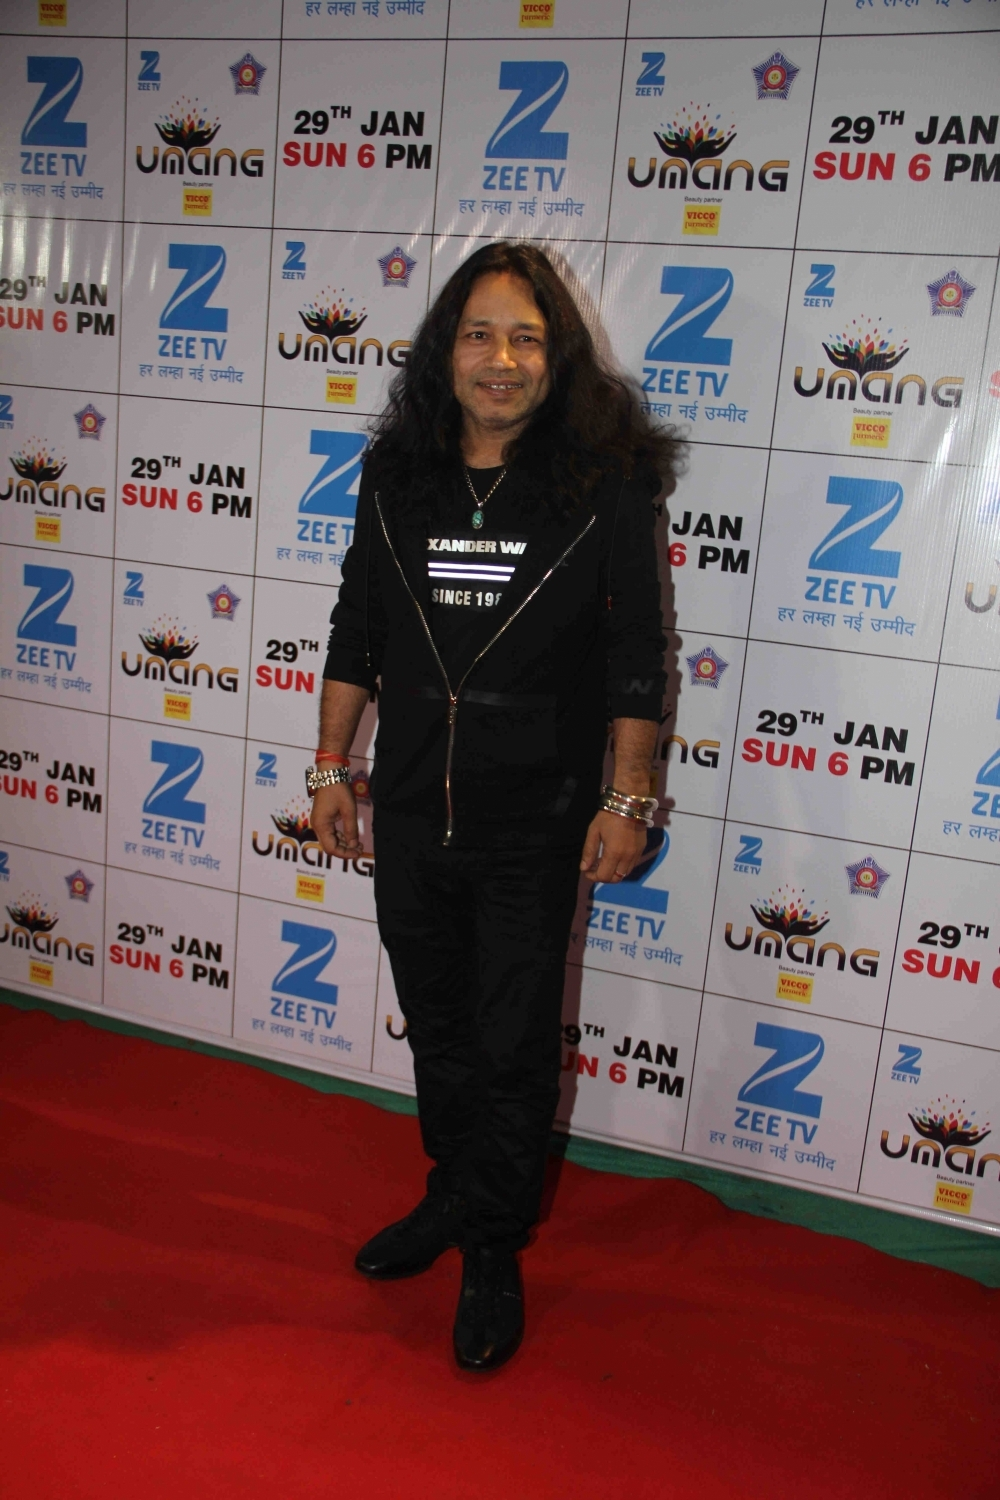 Mumbai: Singer Kailash Kher during the Umang Mumbai Police Show 2017 in Mumbai on Jan 22, 2017. (Photo: IANS)